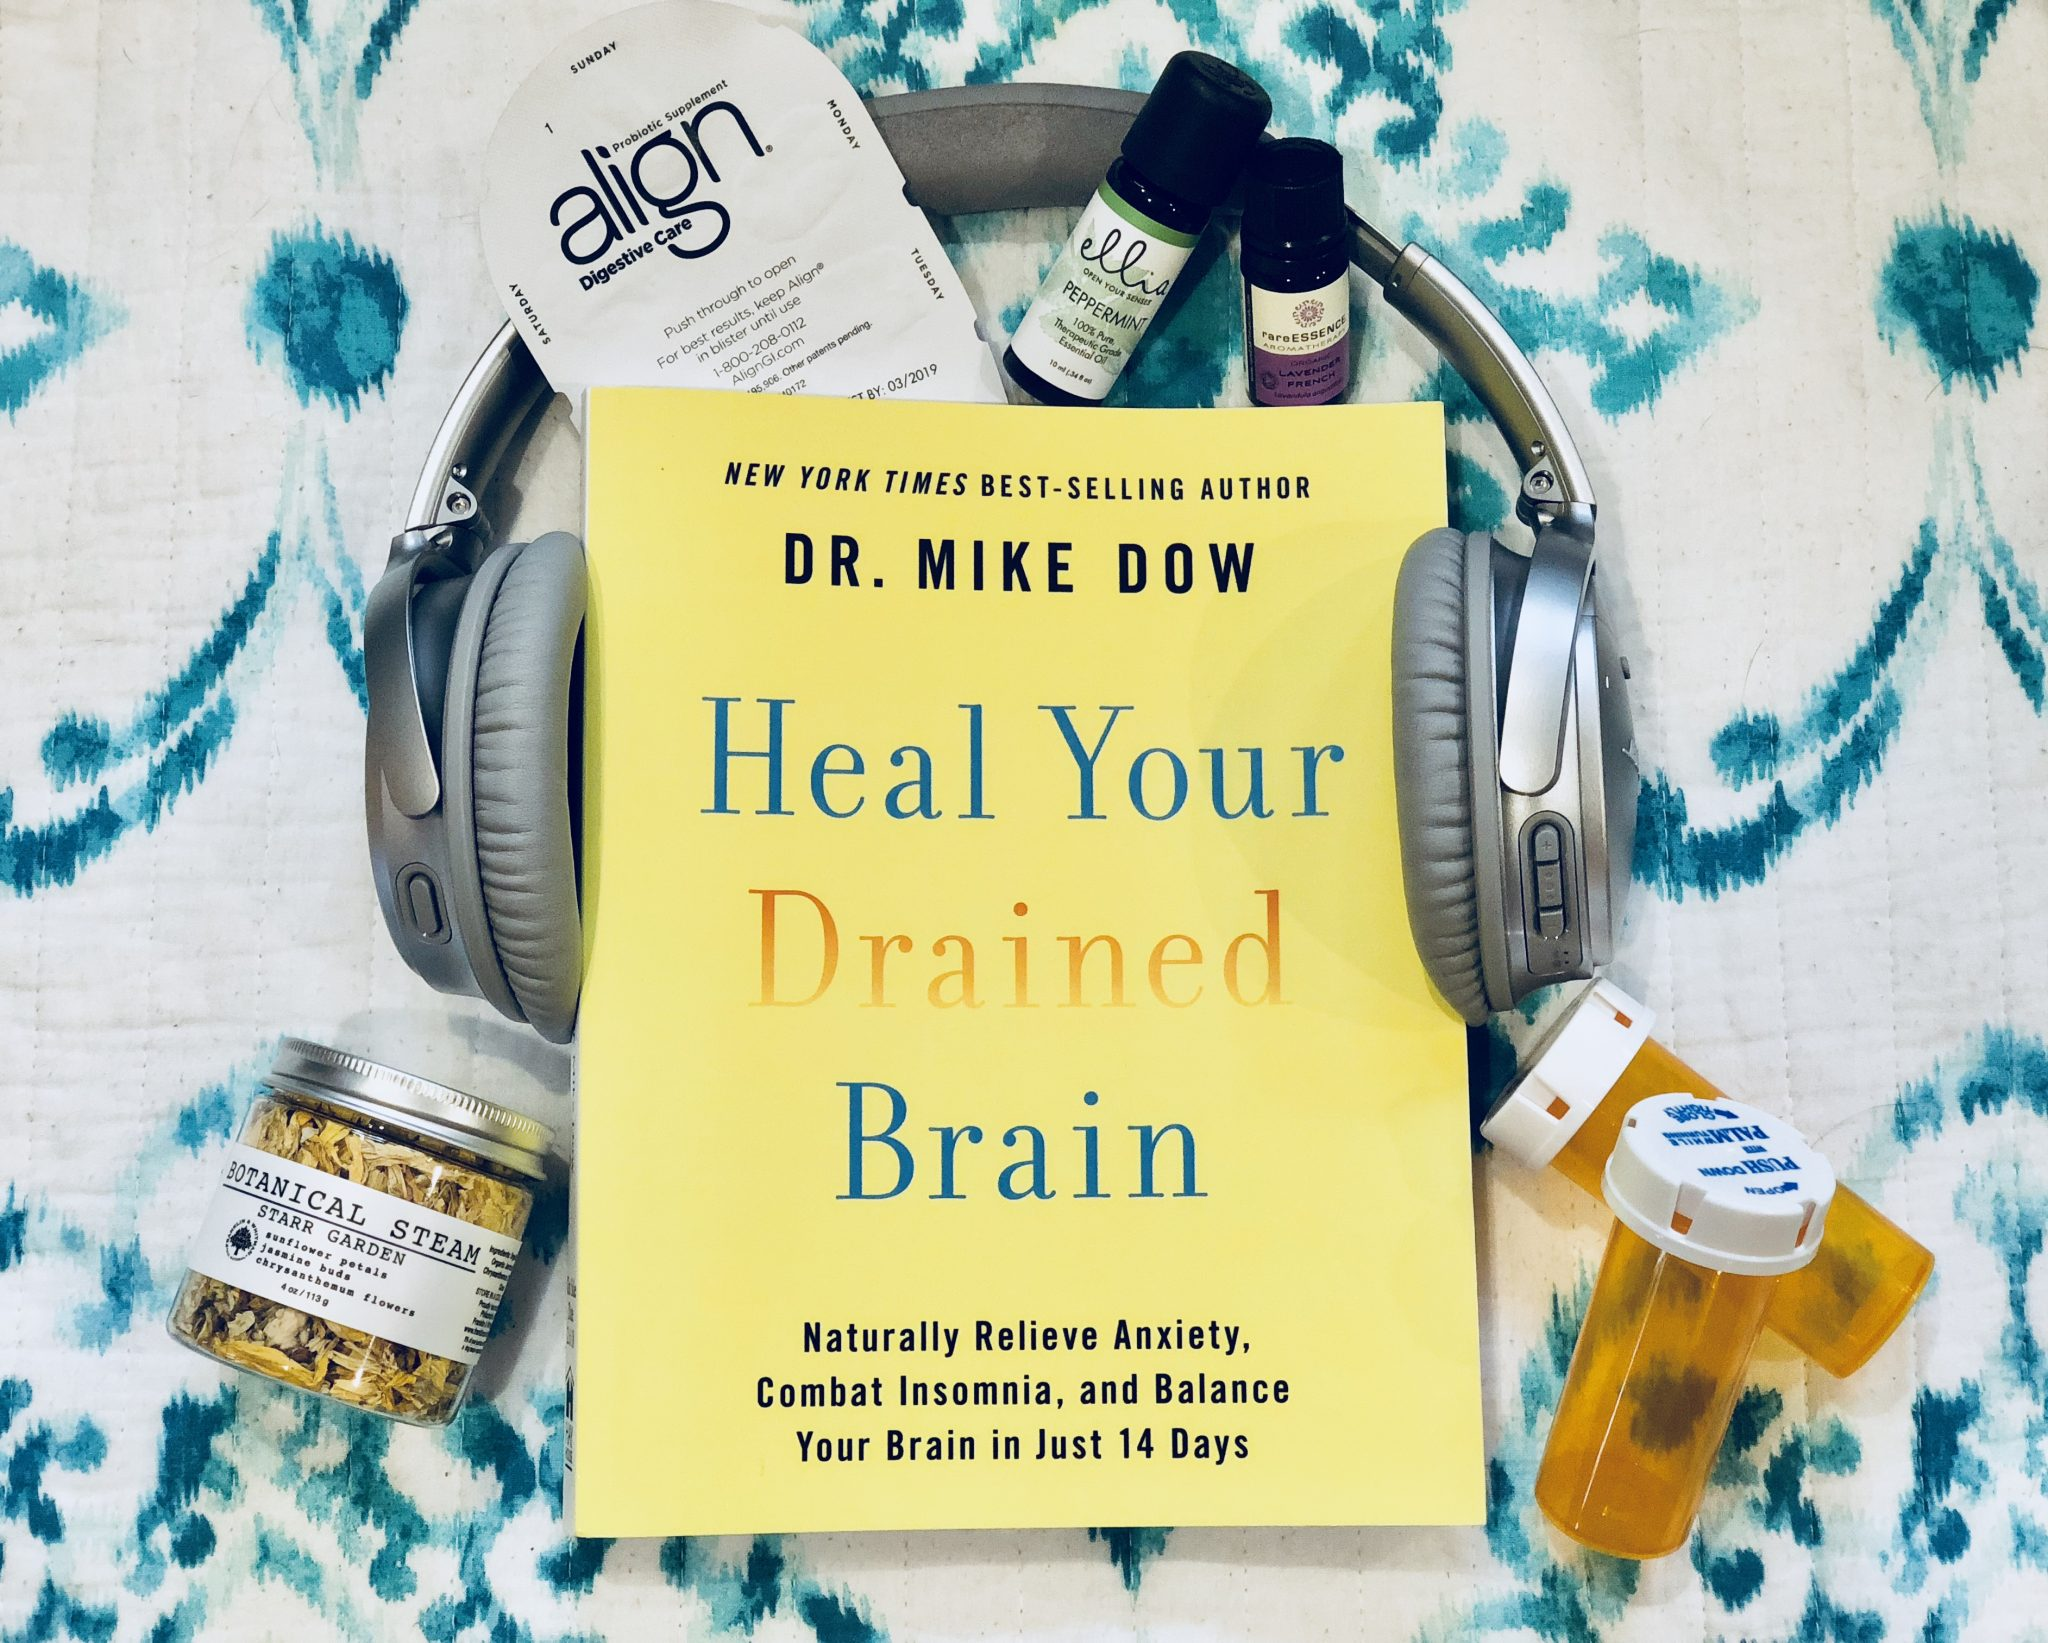 Combat Insomnia and Balance Your Brain in Just 14 Days Naturally Relieve Anxiety Heal Your Drained Brain